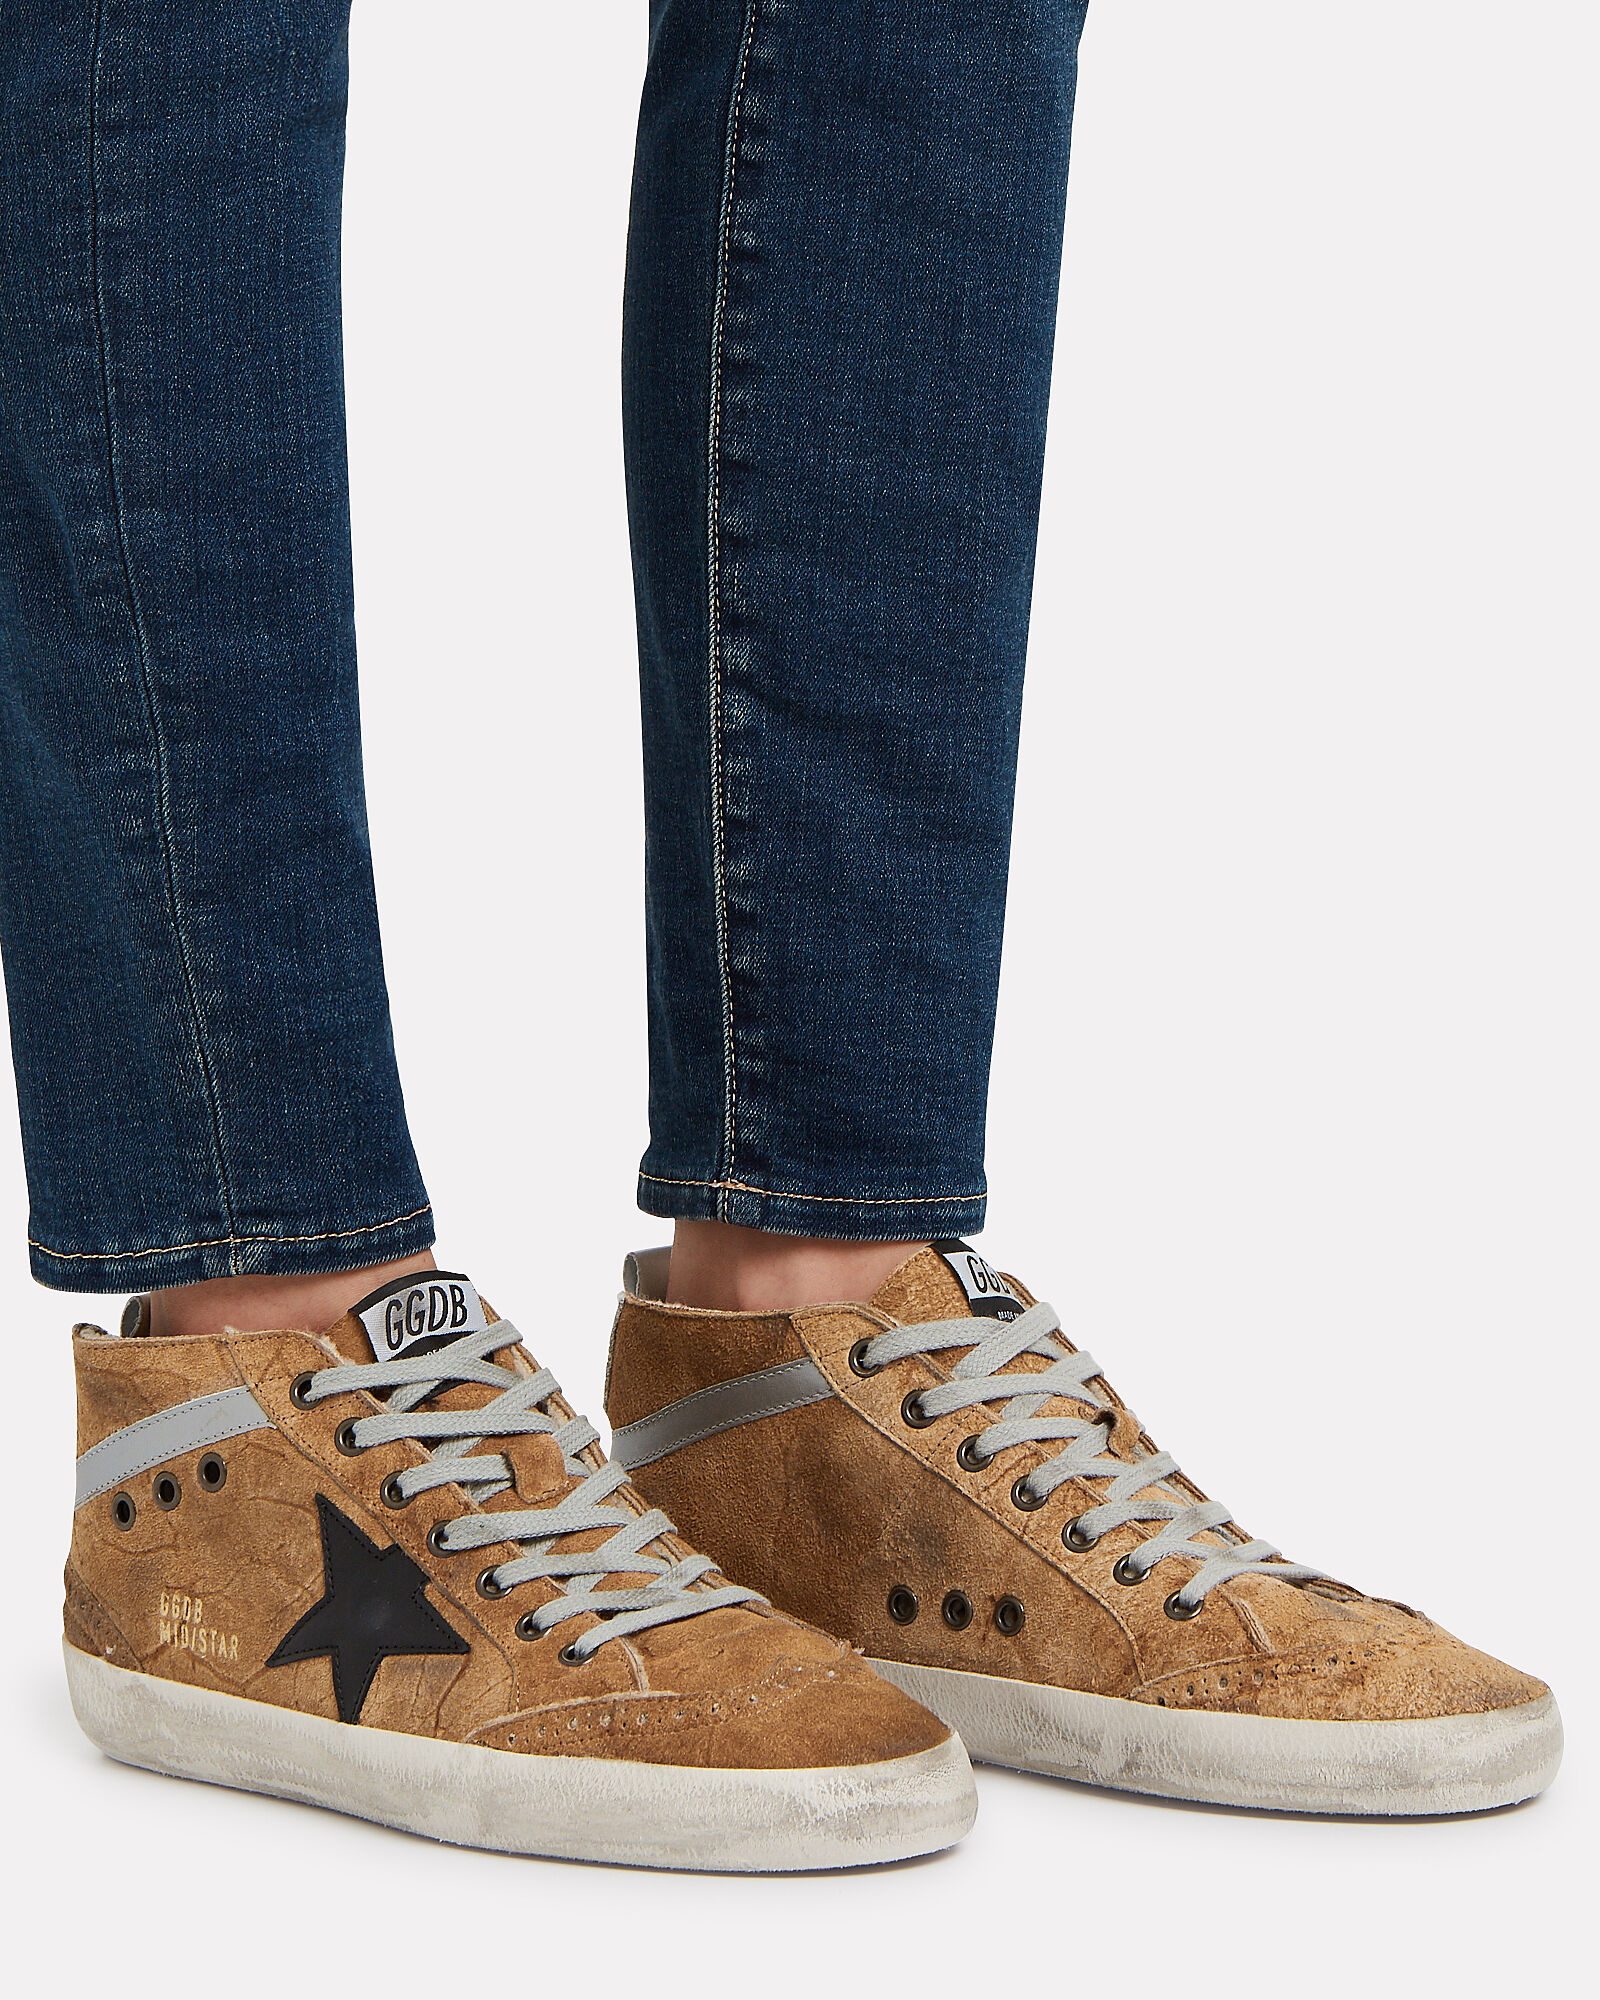 Mid Star Suede Sneakers, ORANGE, hi-res